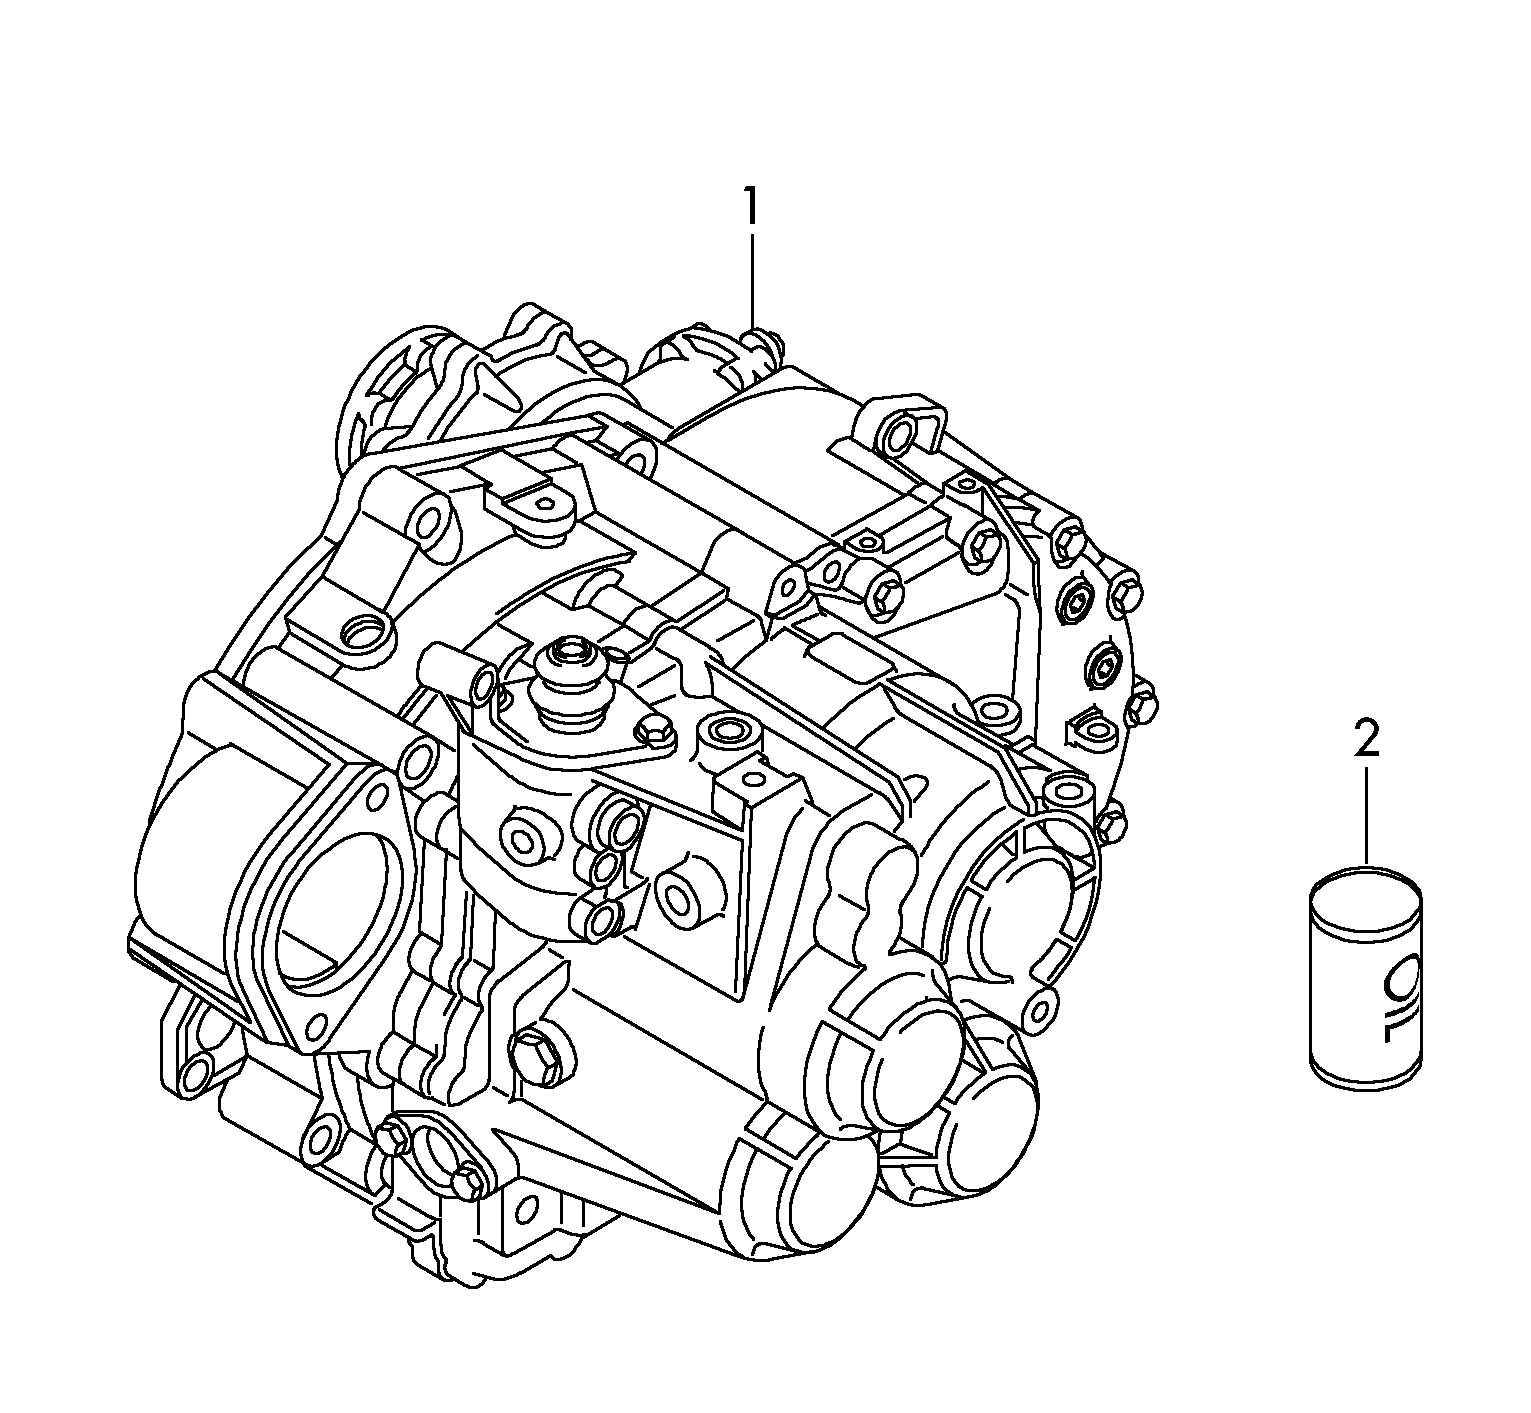 Volkswagen Eos With Hydraulic Operation Release Bearing